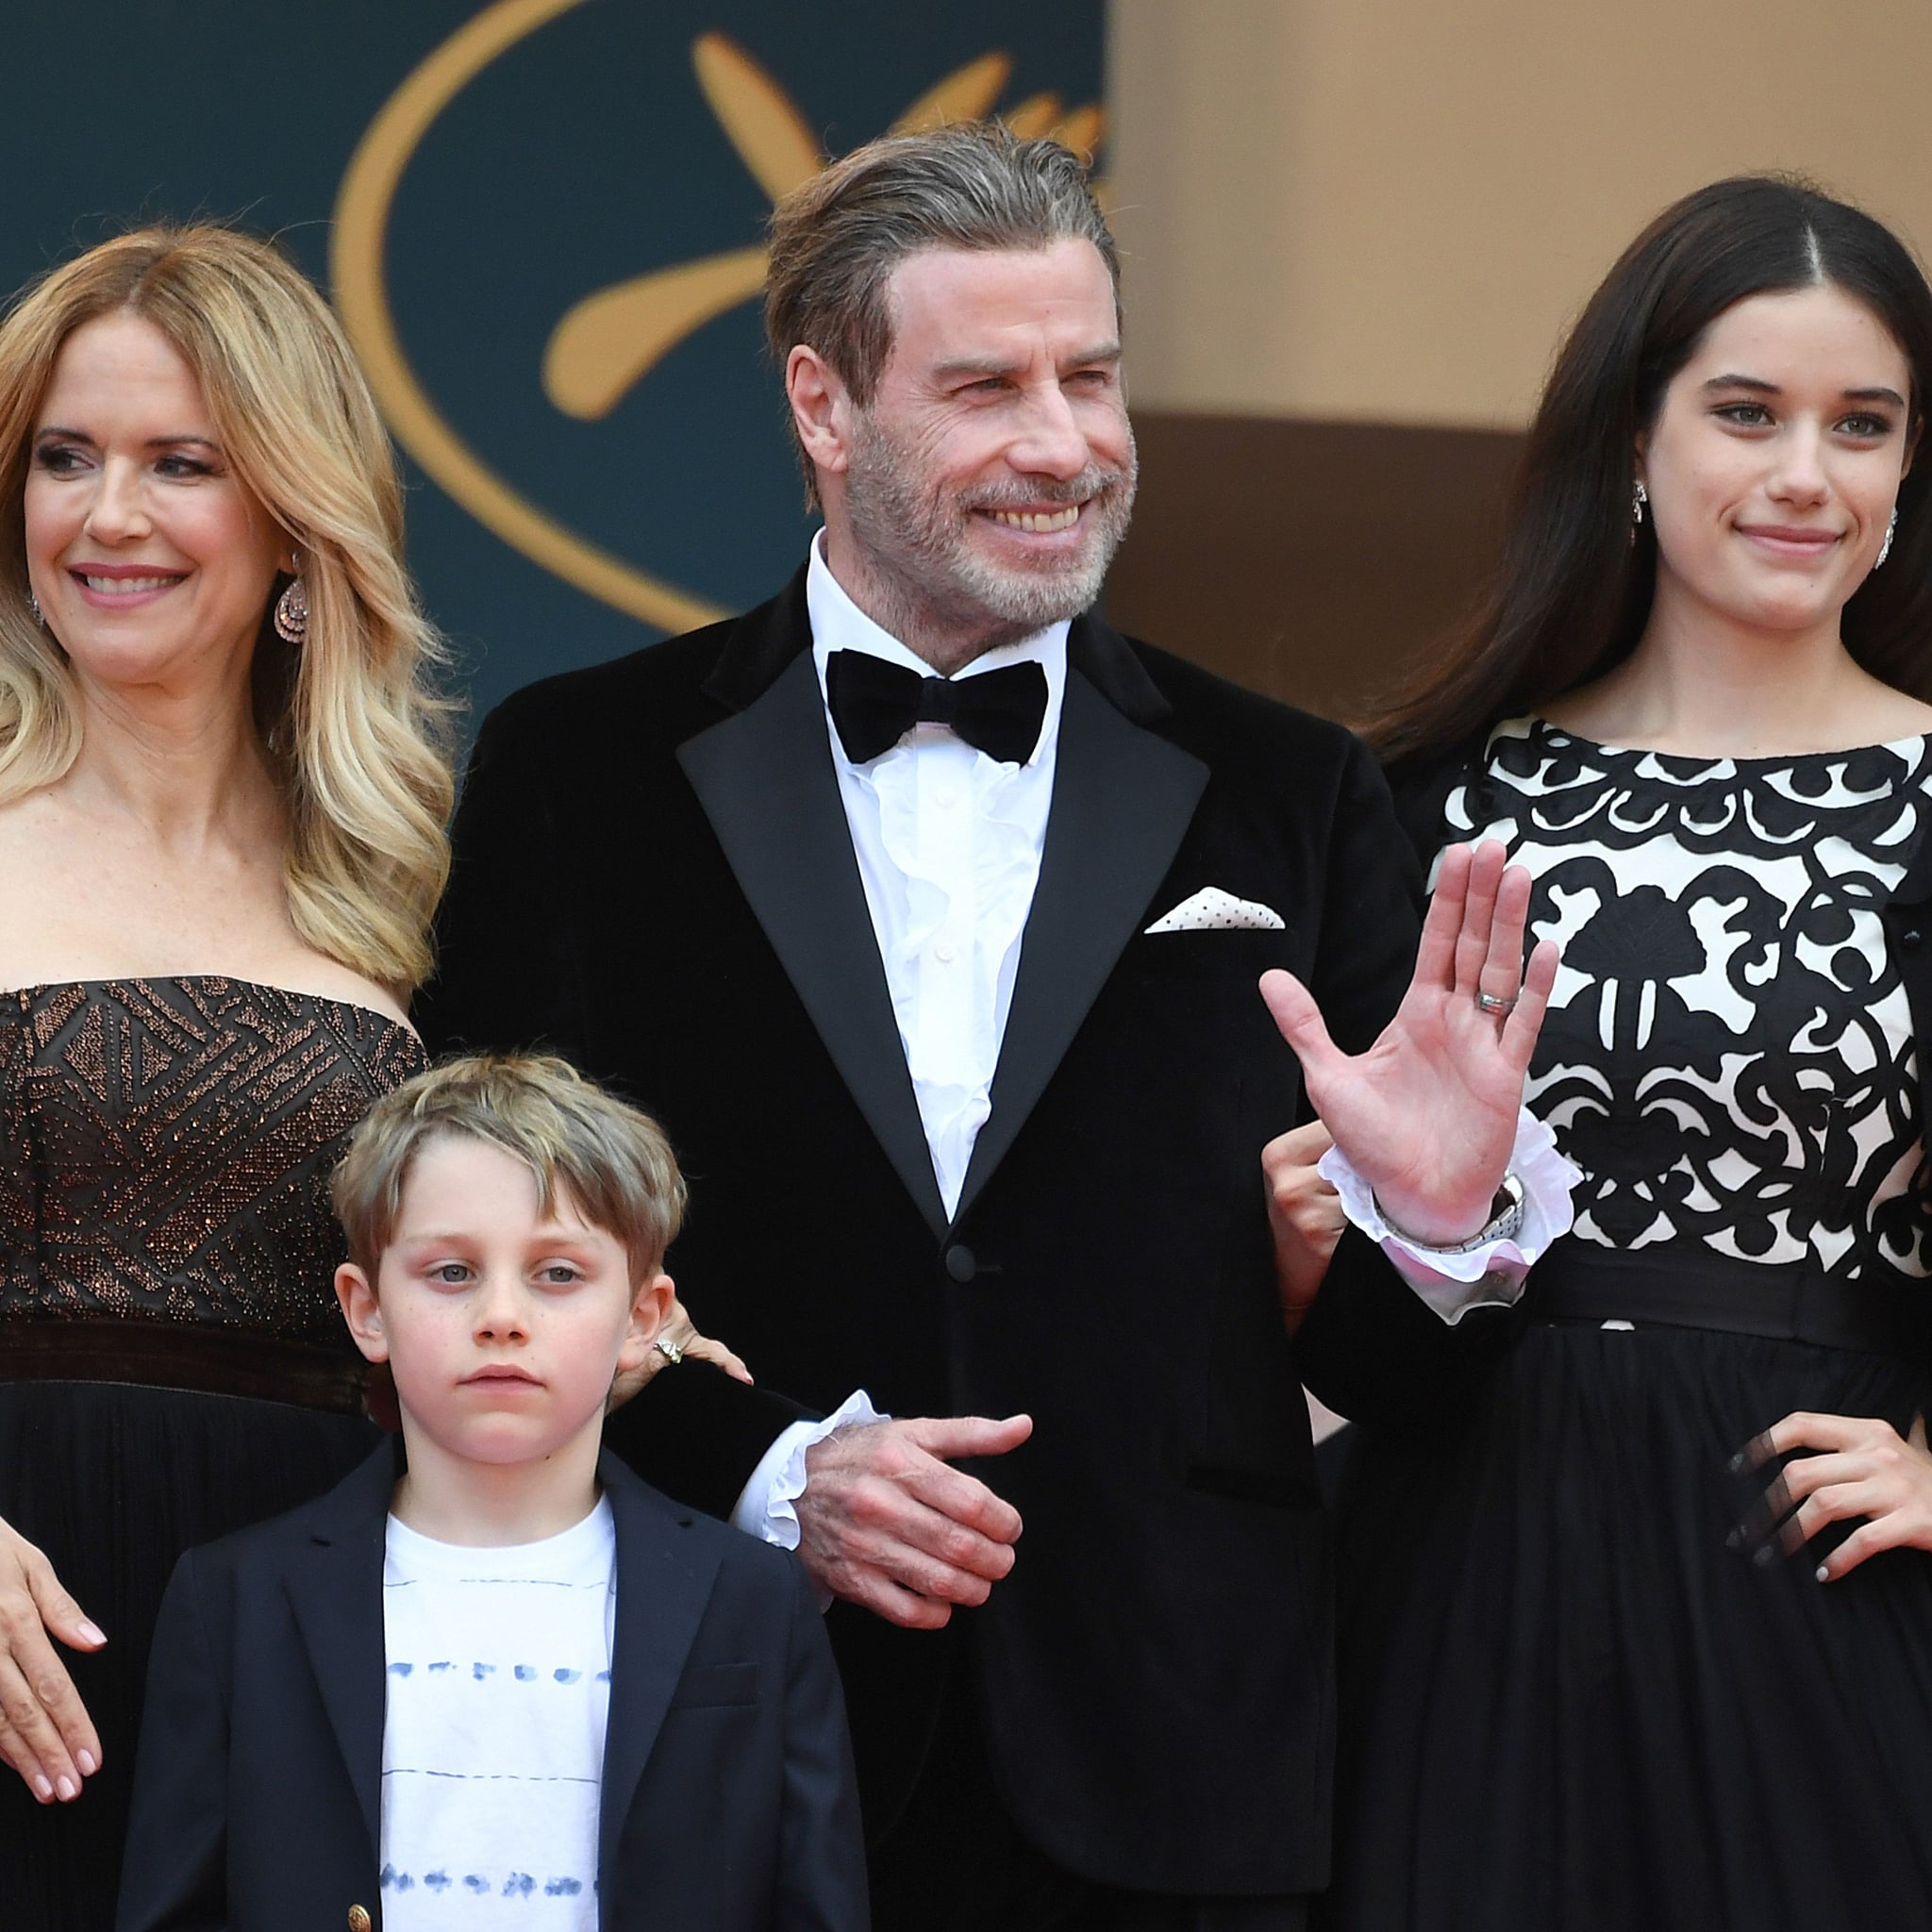 John Travolta and His Family at Cannes Film Festival 2018 ...